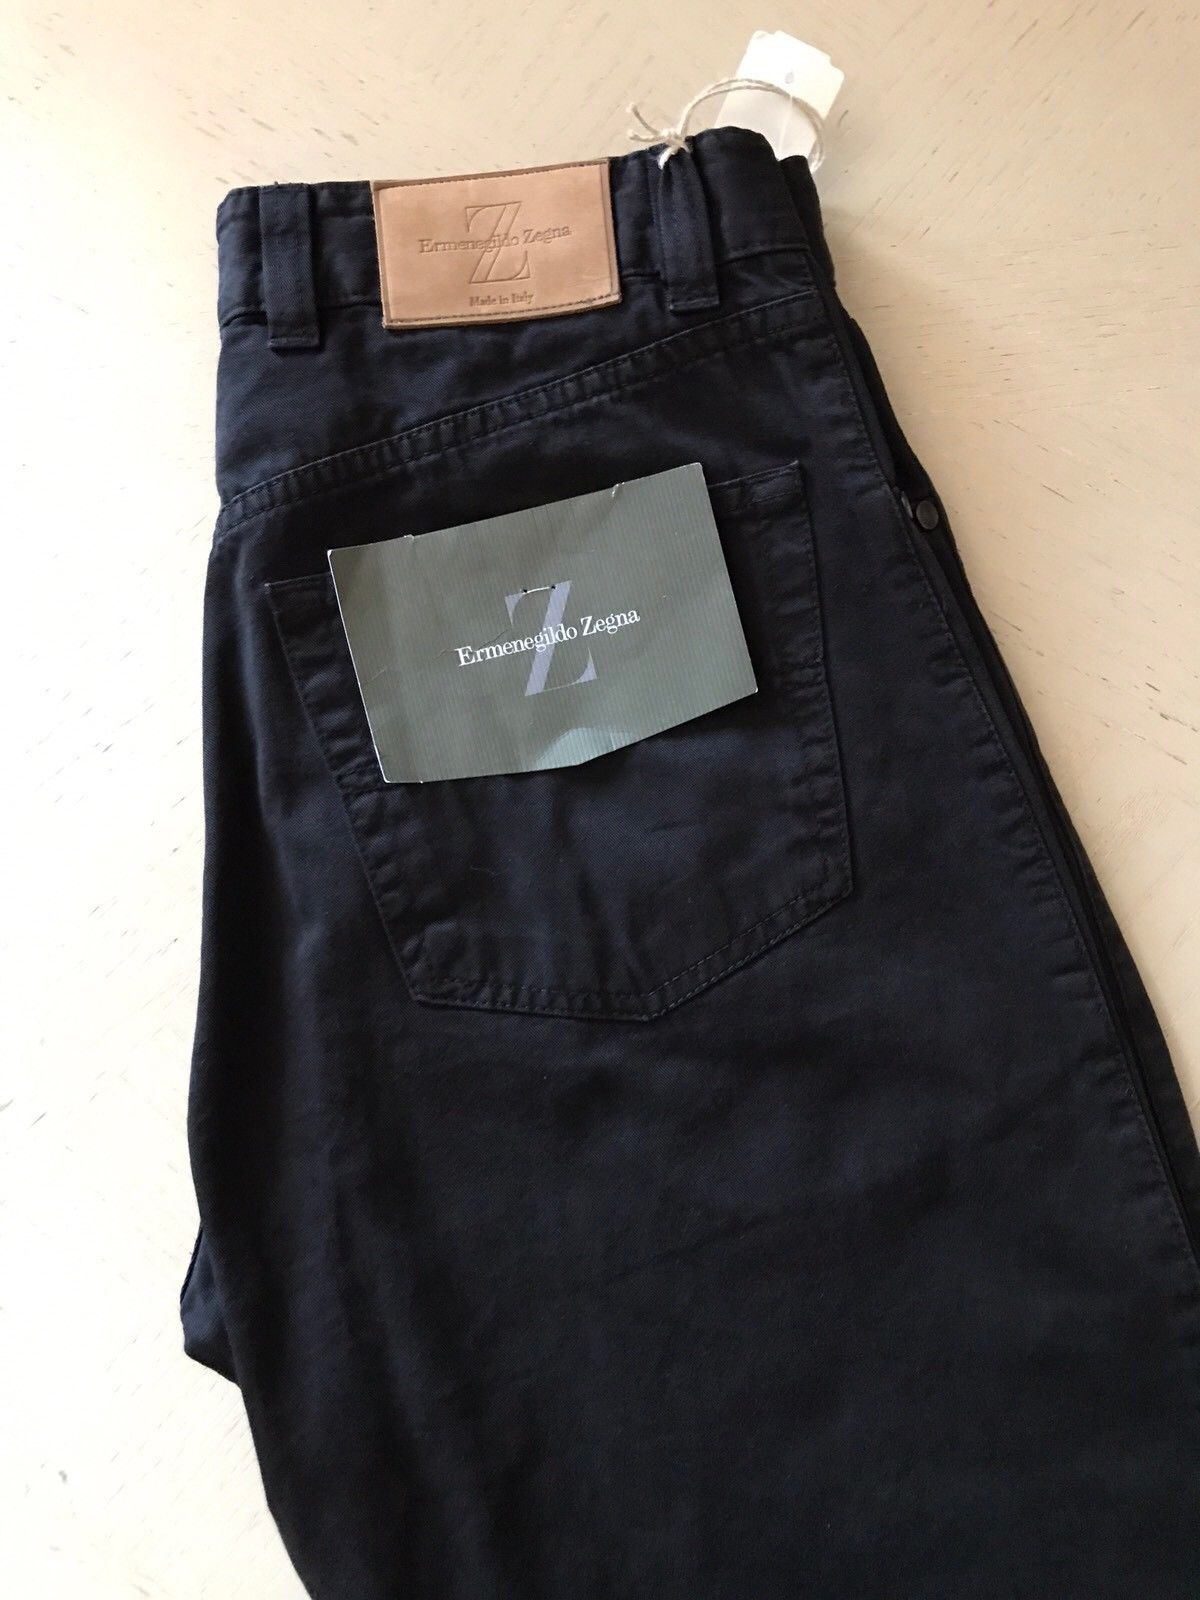 New $545 Ermenegildo Zegna Jeans Pants Black 31 US ( 47 Eu ) Italy